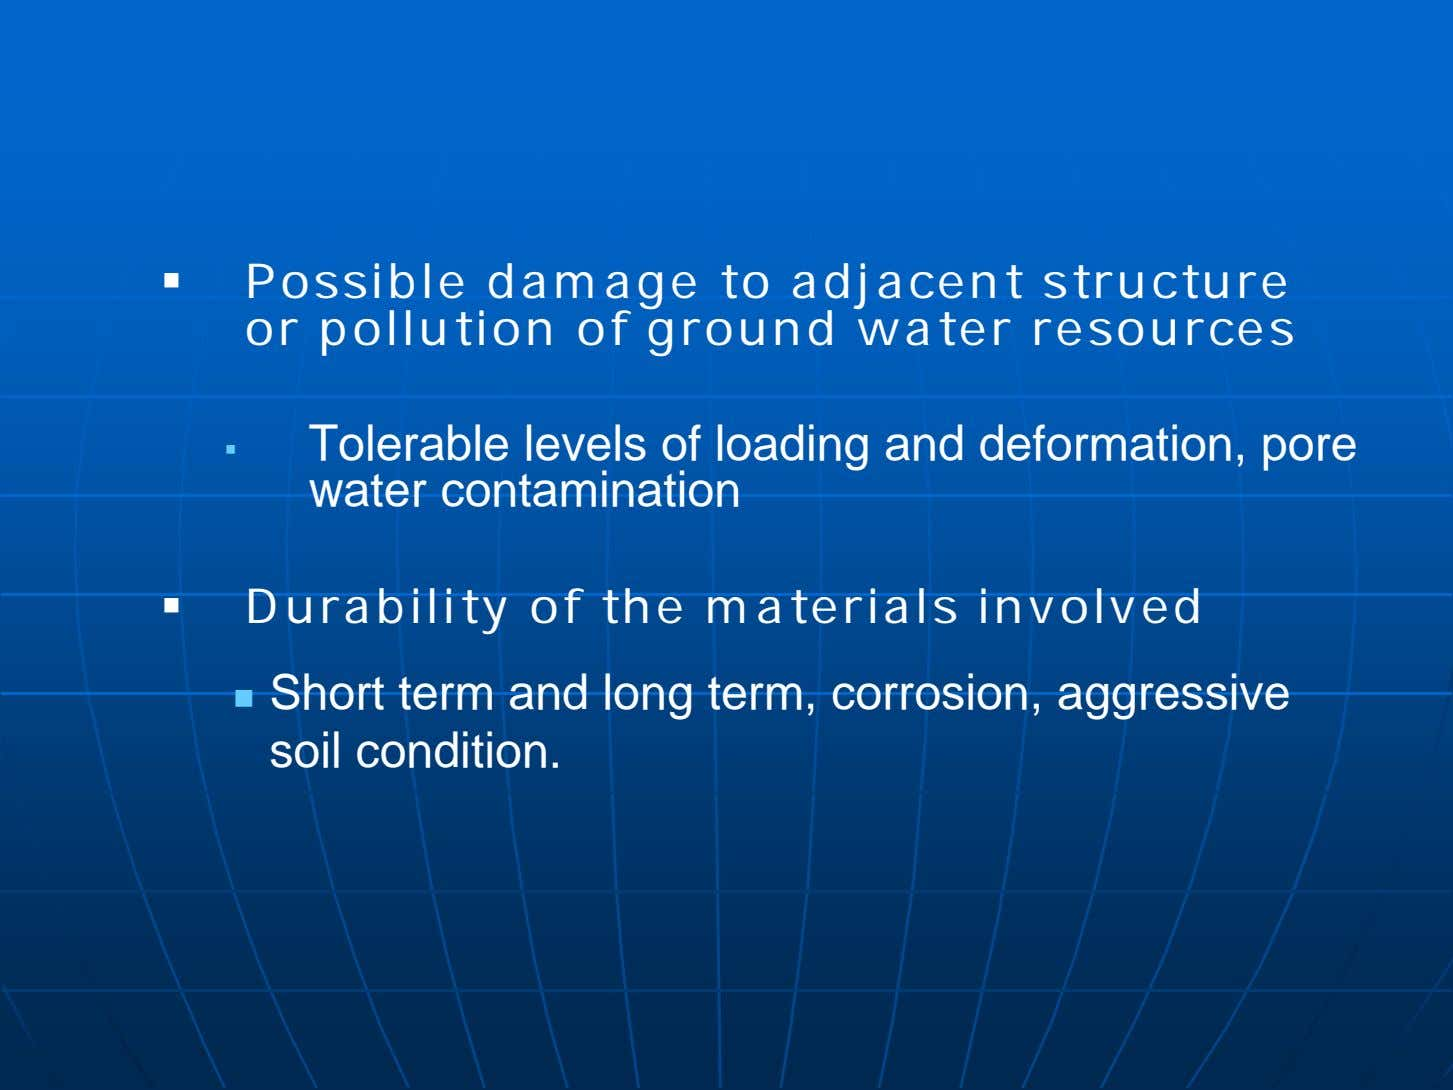  Possible damage to adjacent structure or pollution of ground water resources  Tolerable levels